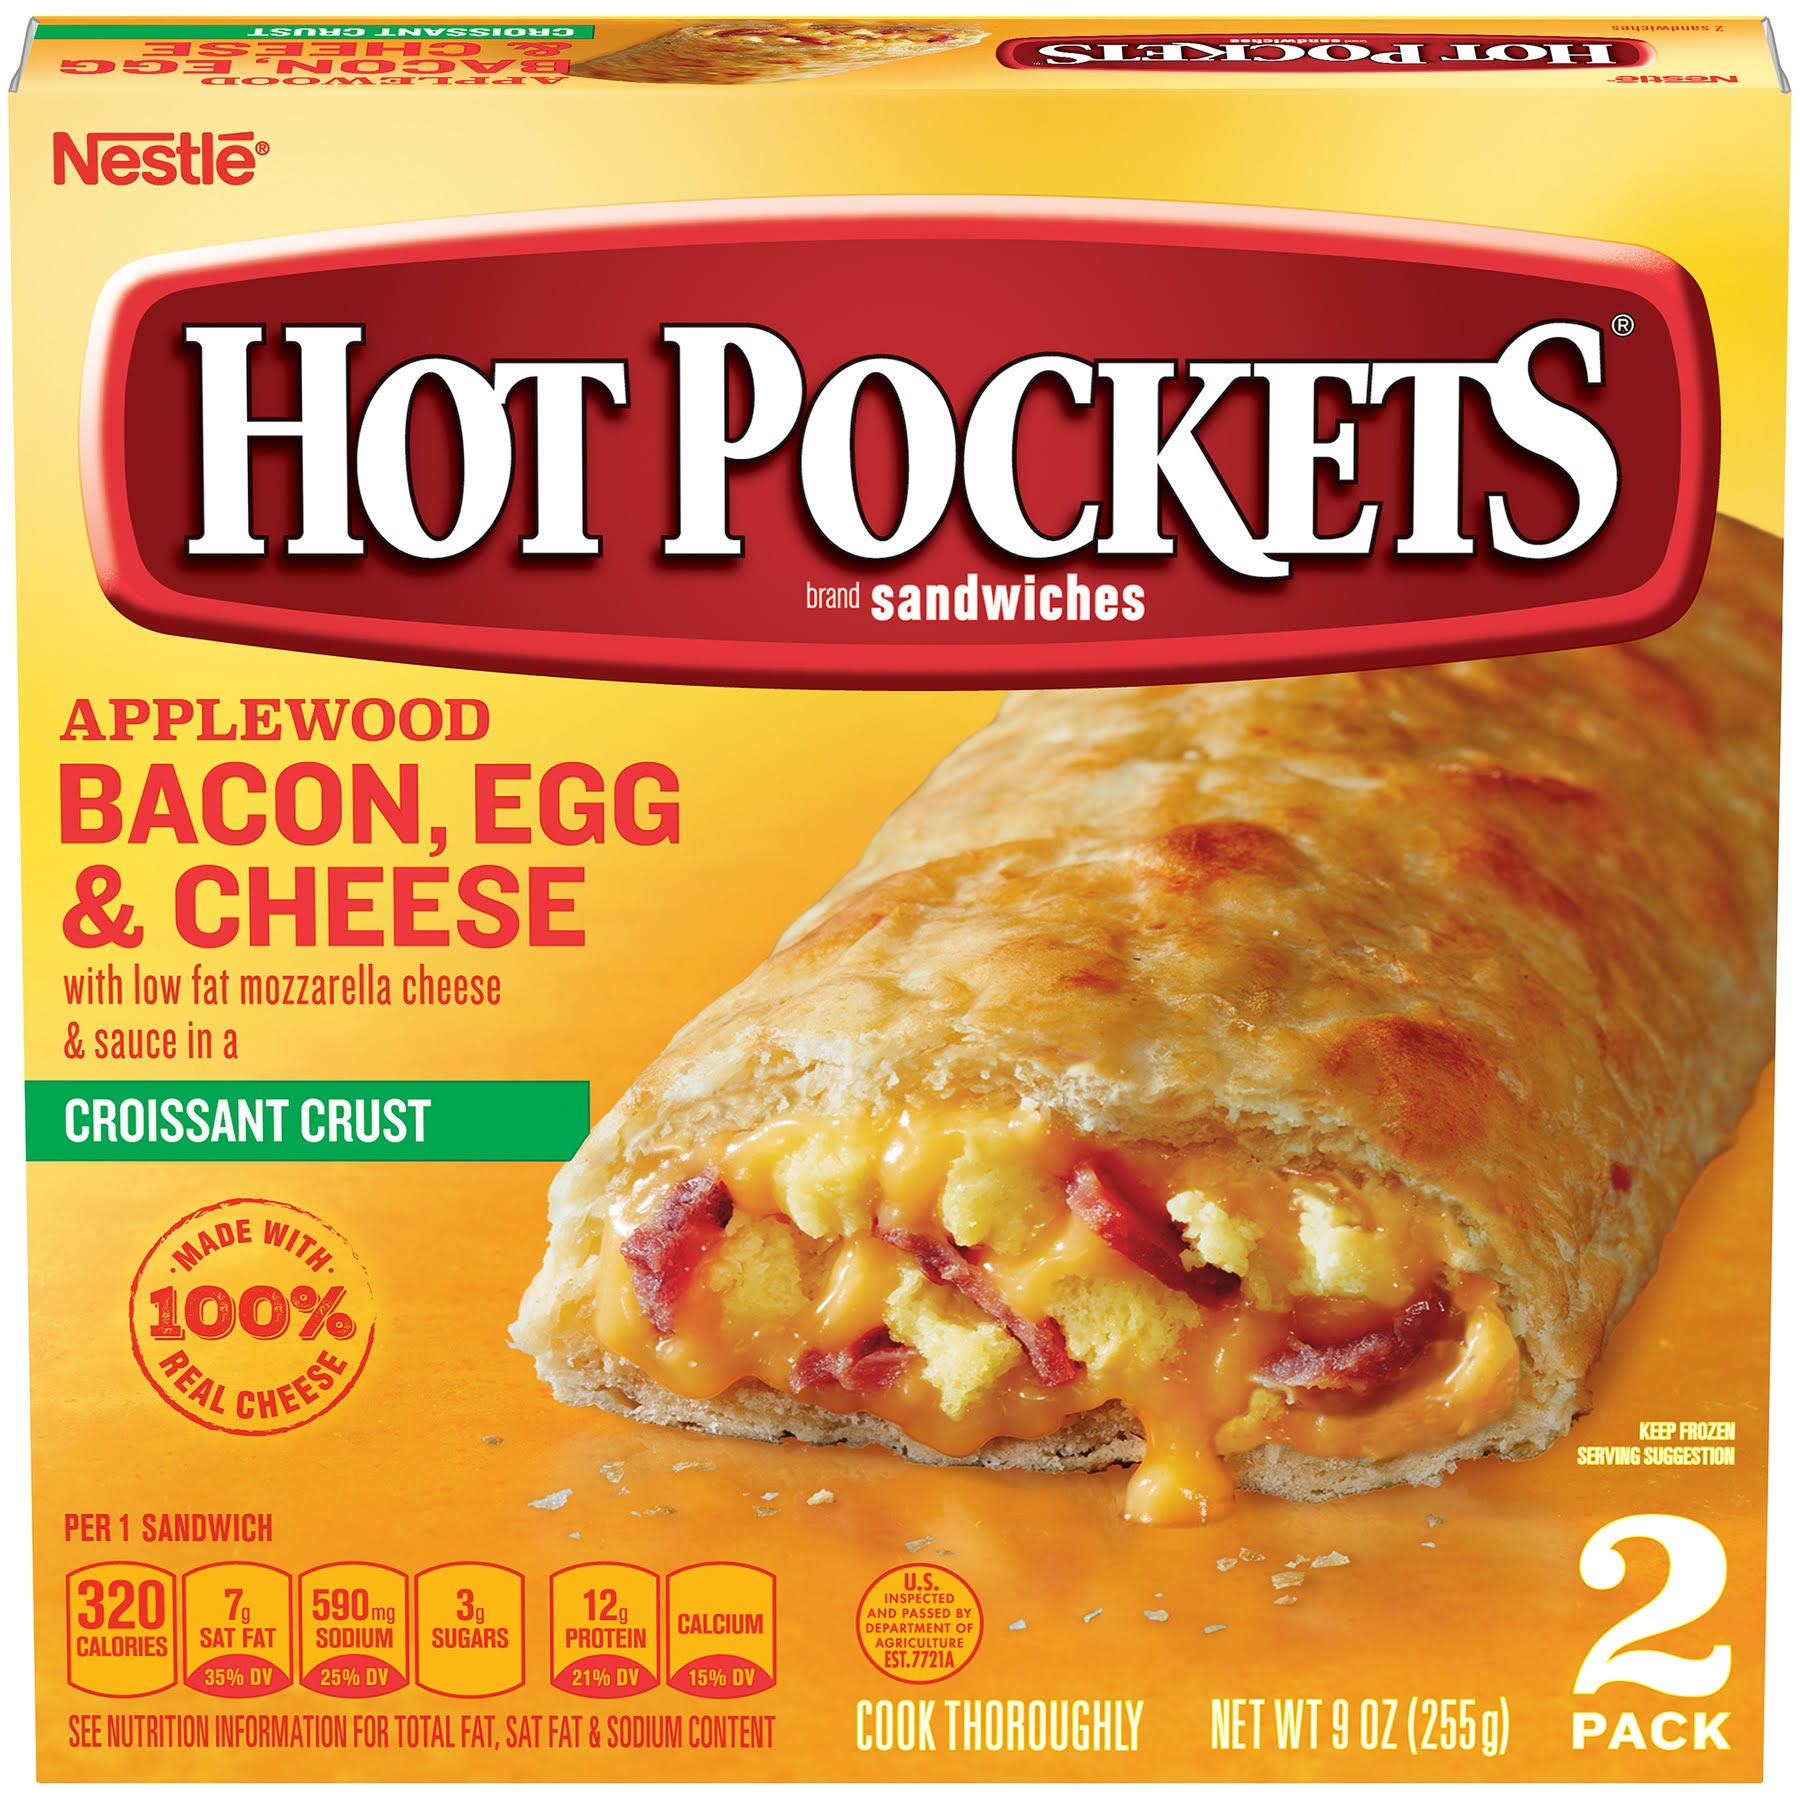 Hot Pockets Applewood Bacon Egg and Cheese Sandwiches - 2ct, 9oz